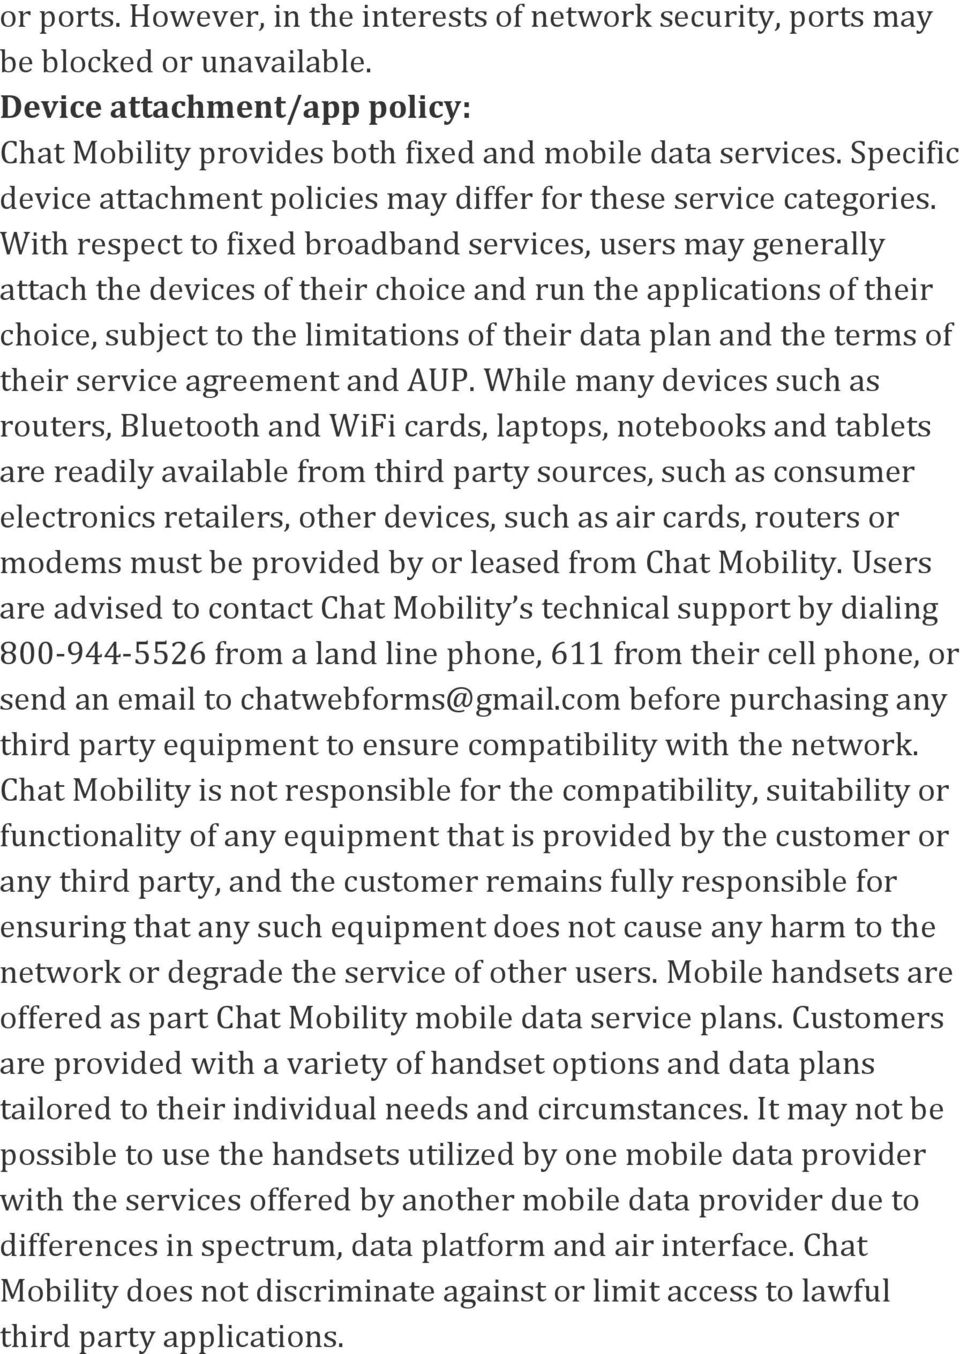 With respect to fixed broadband services, users may generally attach the devices of their choice and run the applications of their choice, subject to the limitations of their data plan and the terms